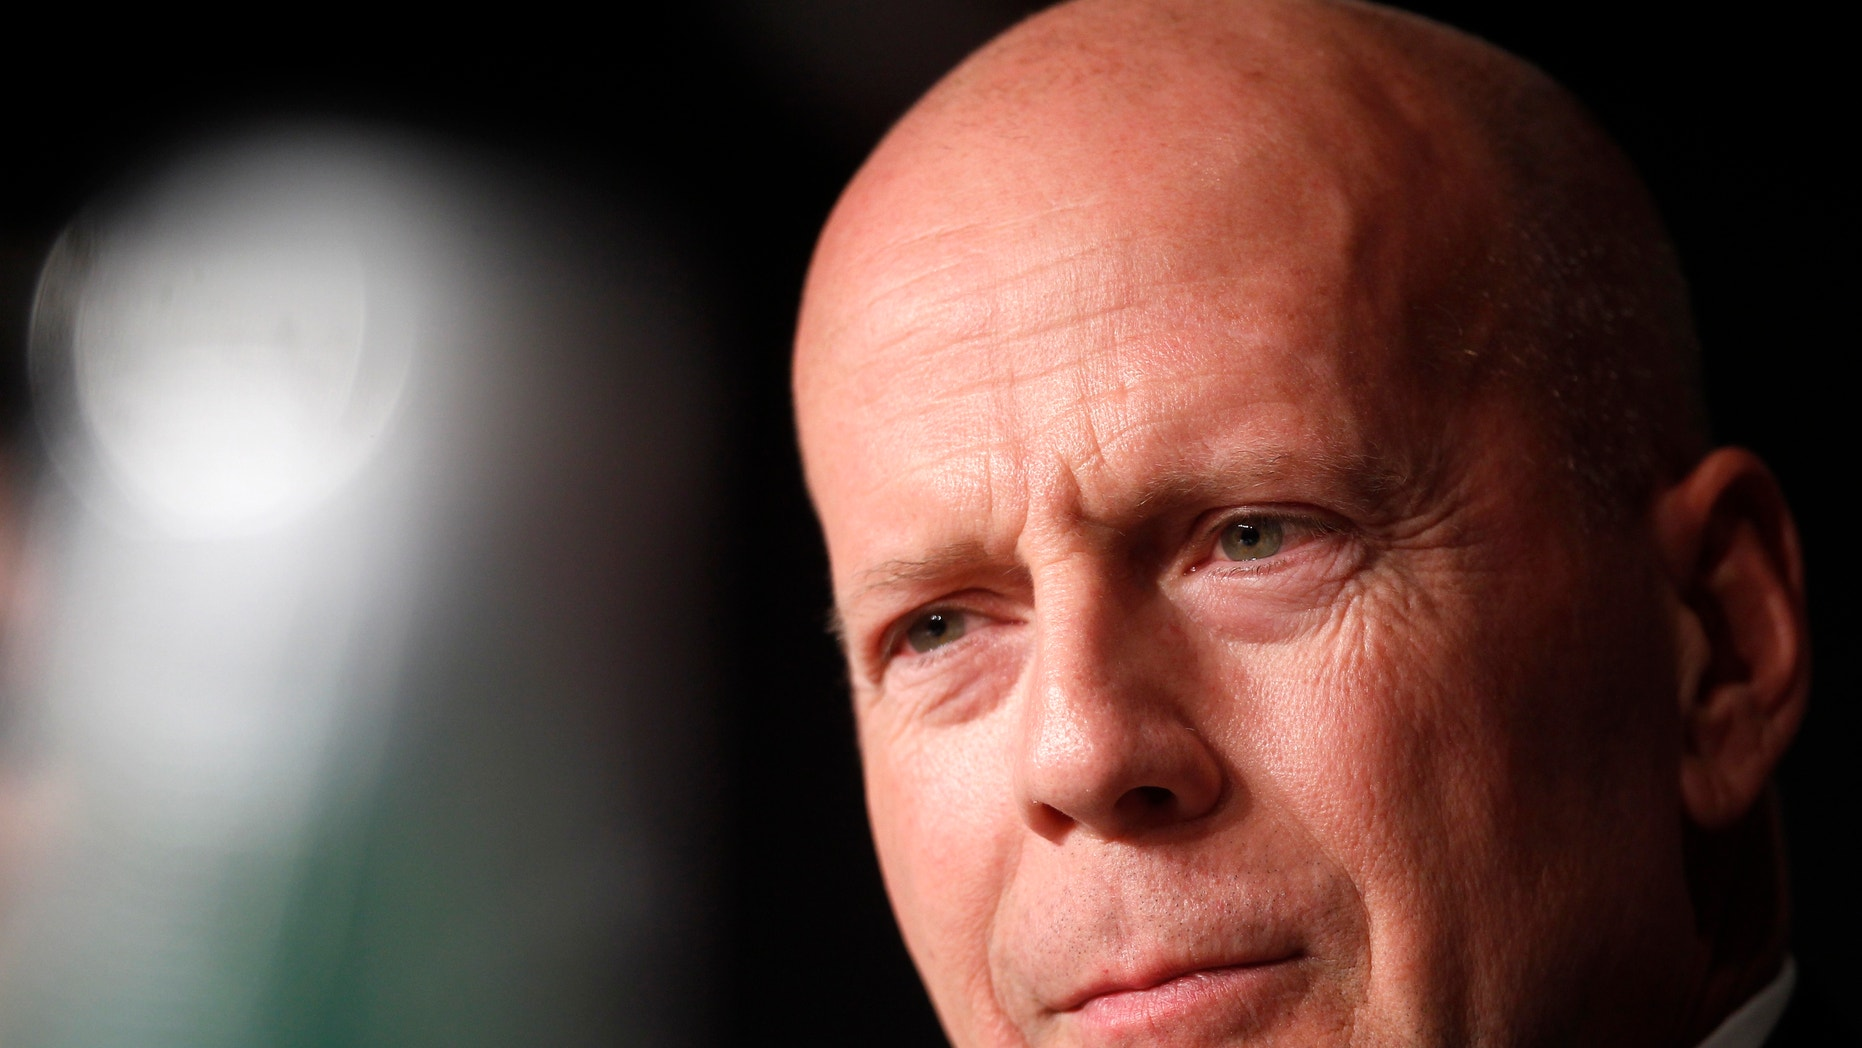 """Bruce Willis attends a news conference for the film """"Moonrise Kingdom"""" on May 16, 2012."""